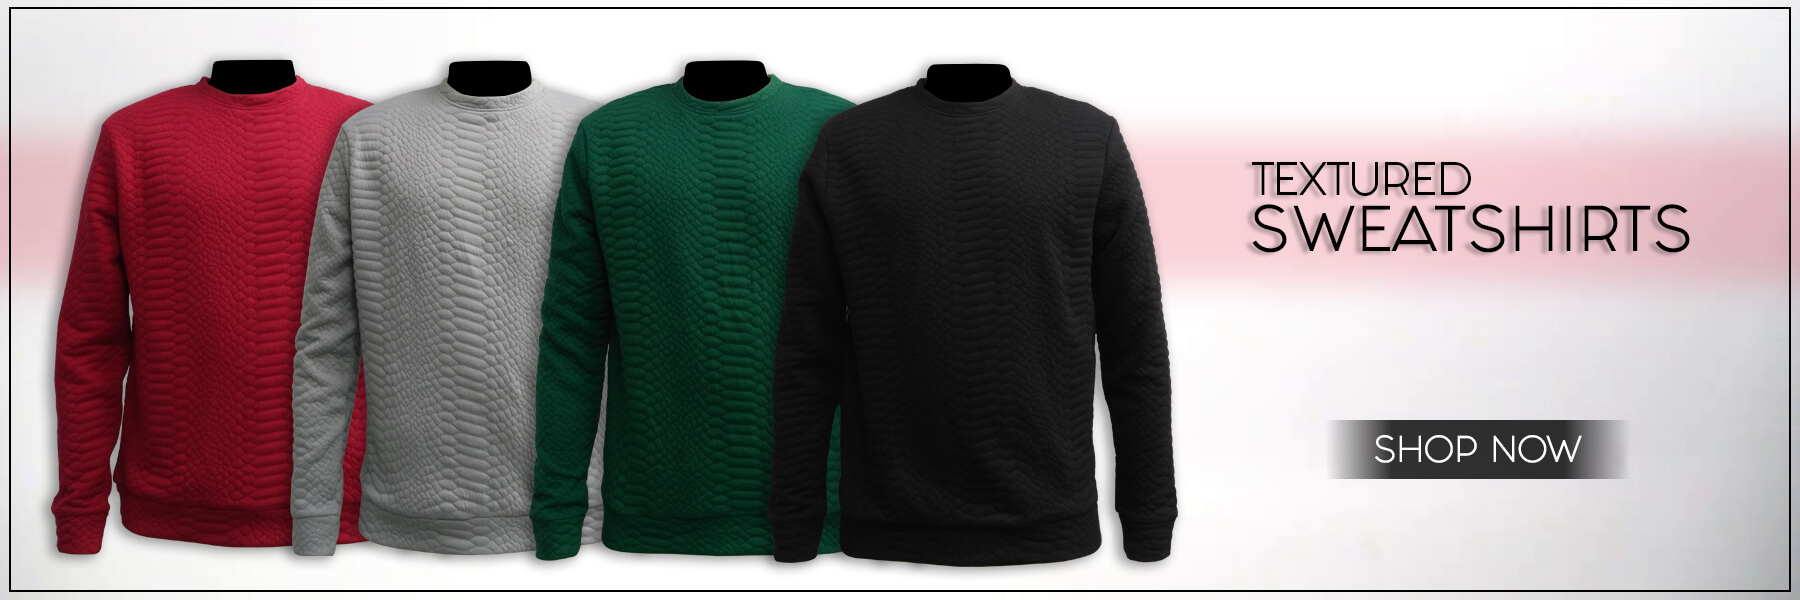 wholesale-men-sweatshirts-and-garments-supplier-in-dubai-uae-and-middle-east